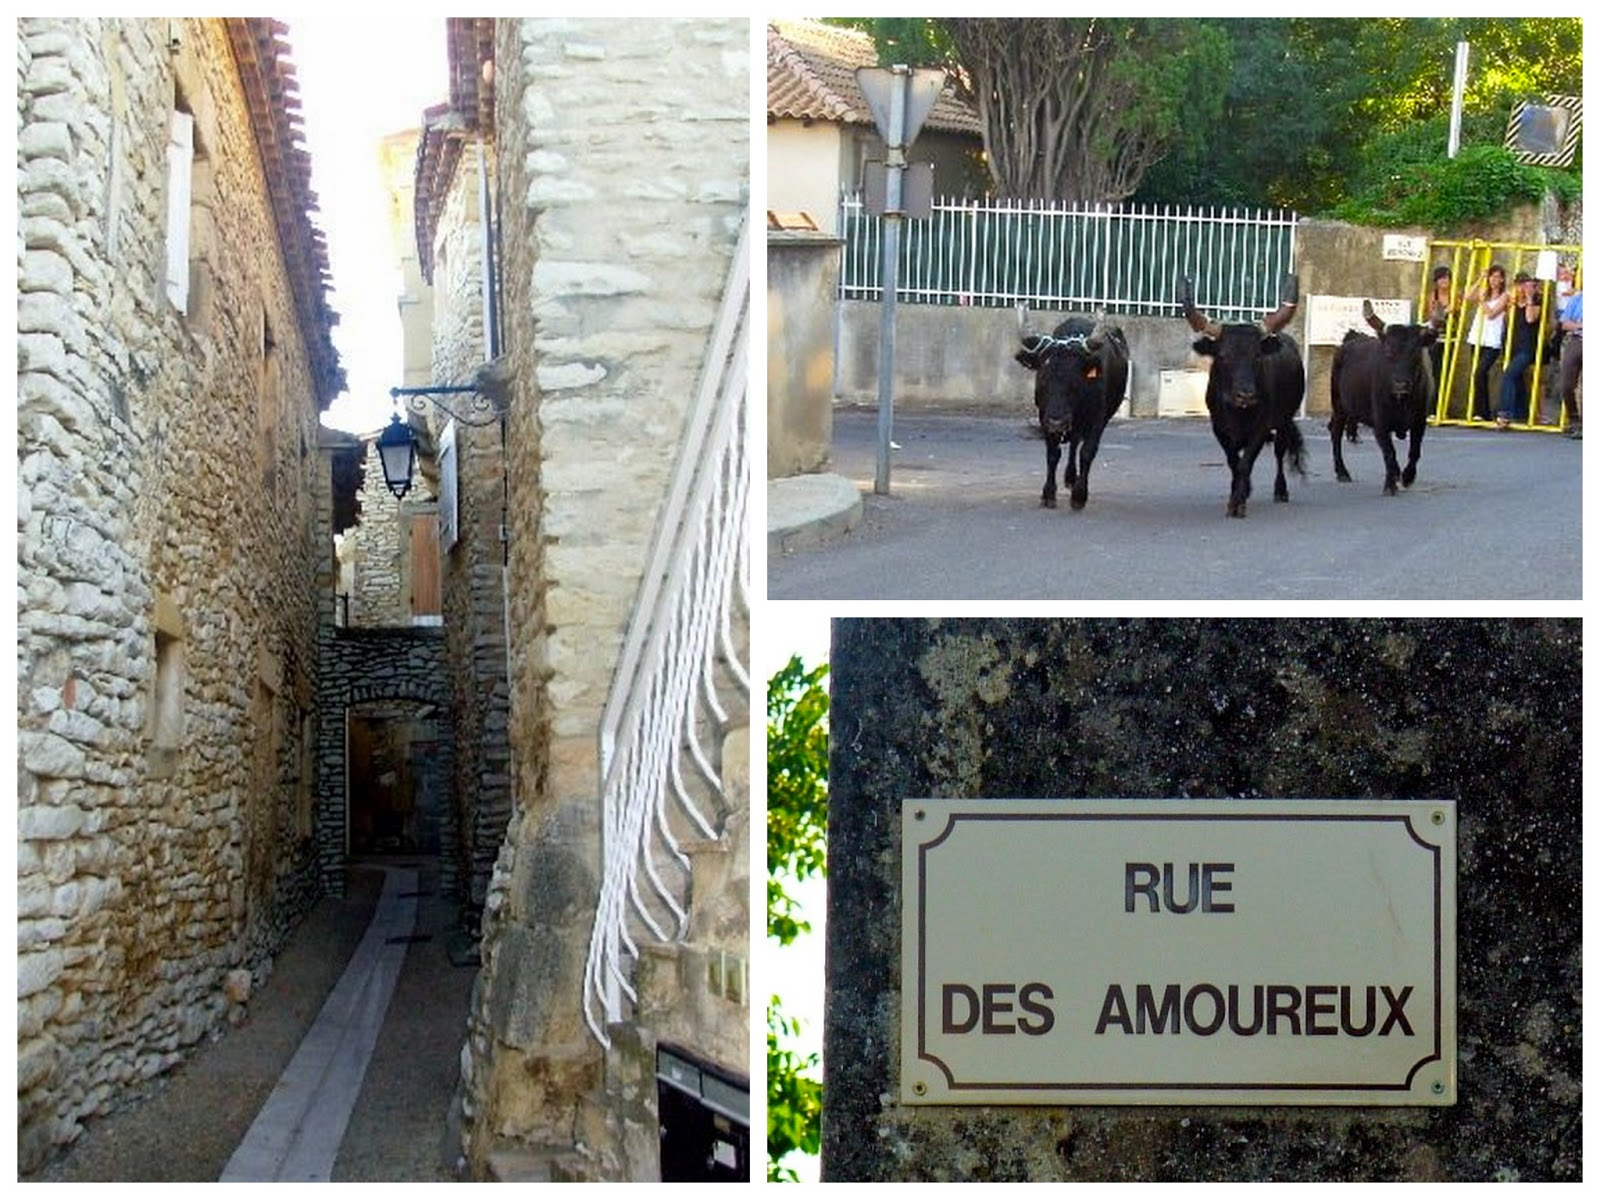 Village scenes in the south of France